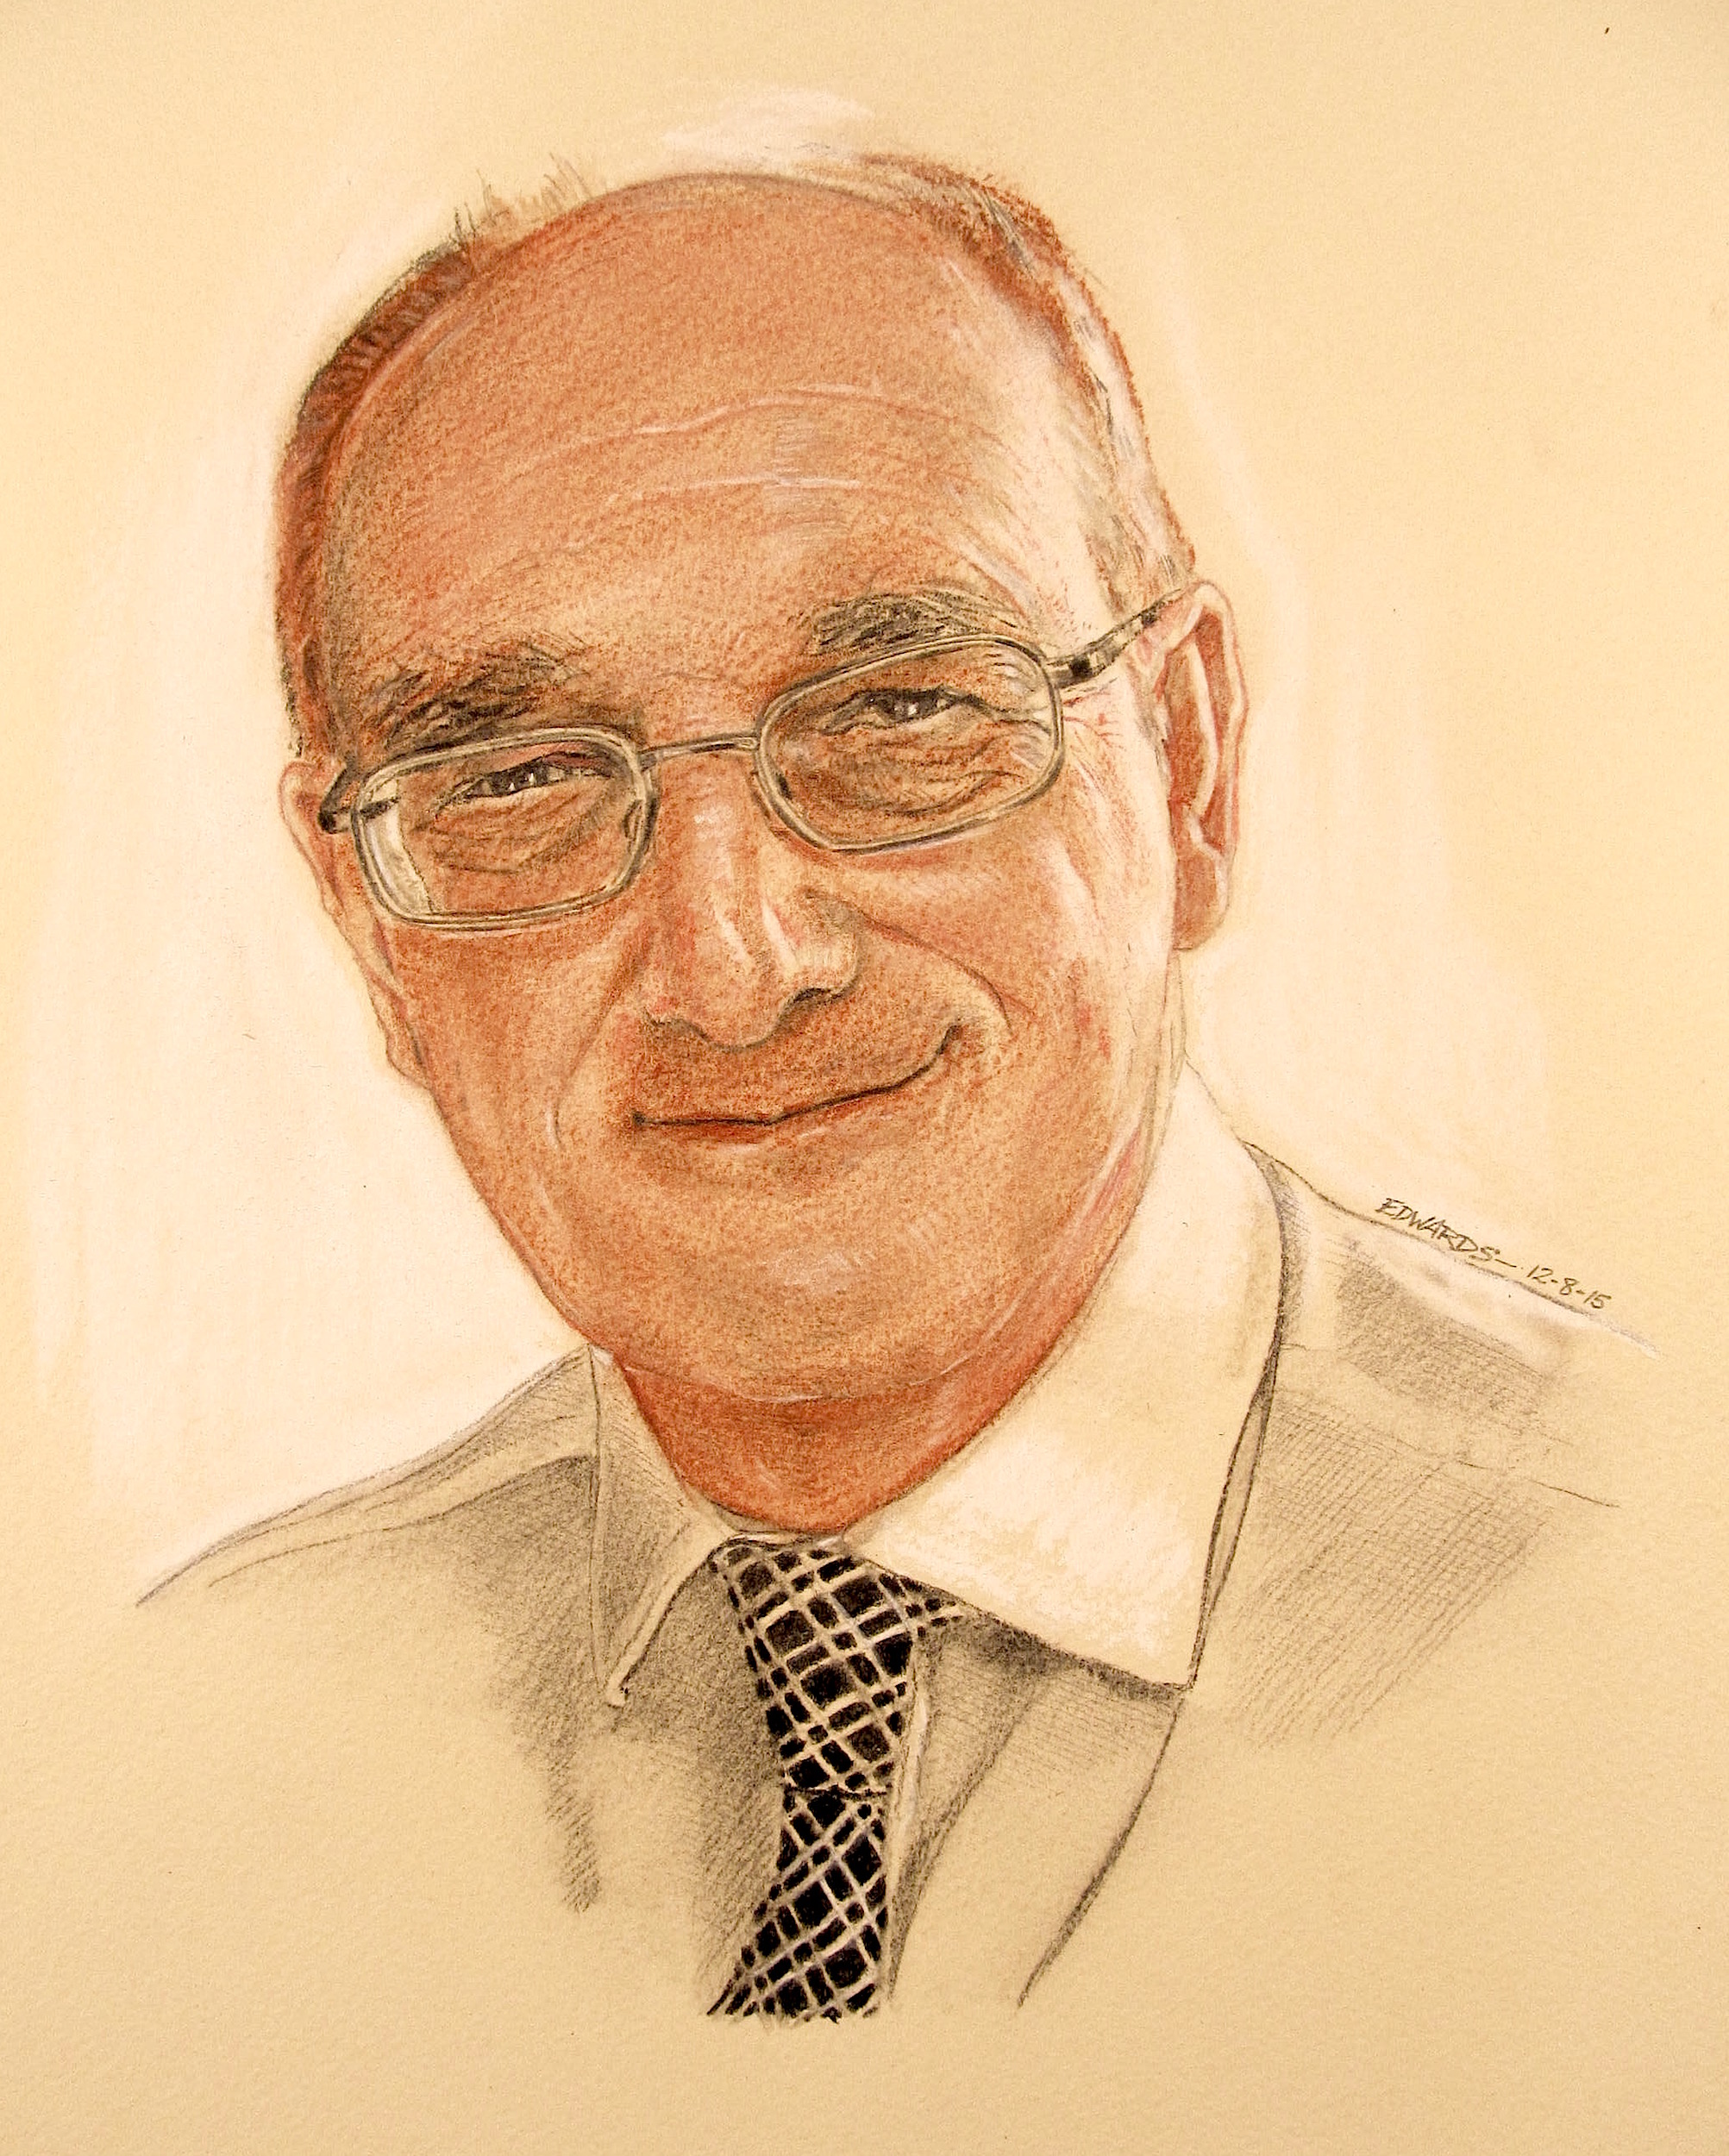 Professor Sir Leszek Borysiewicz, Vice-Chancellor of the University of Cambridge